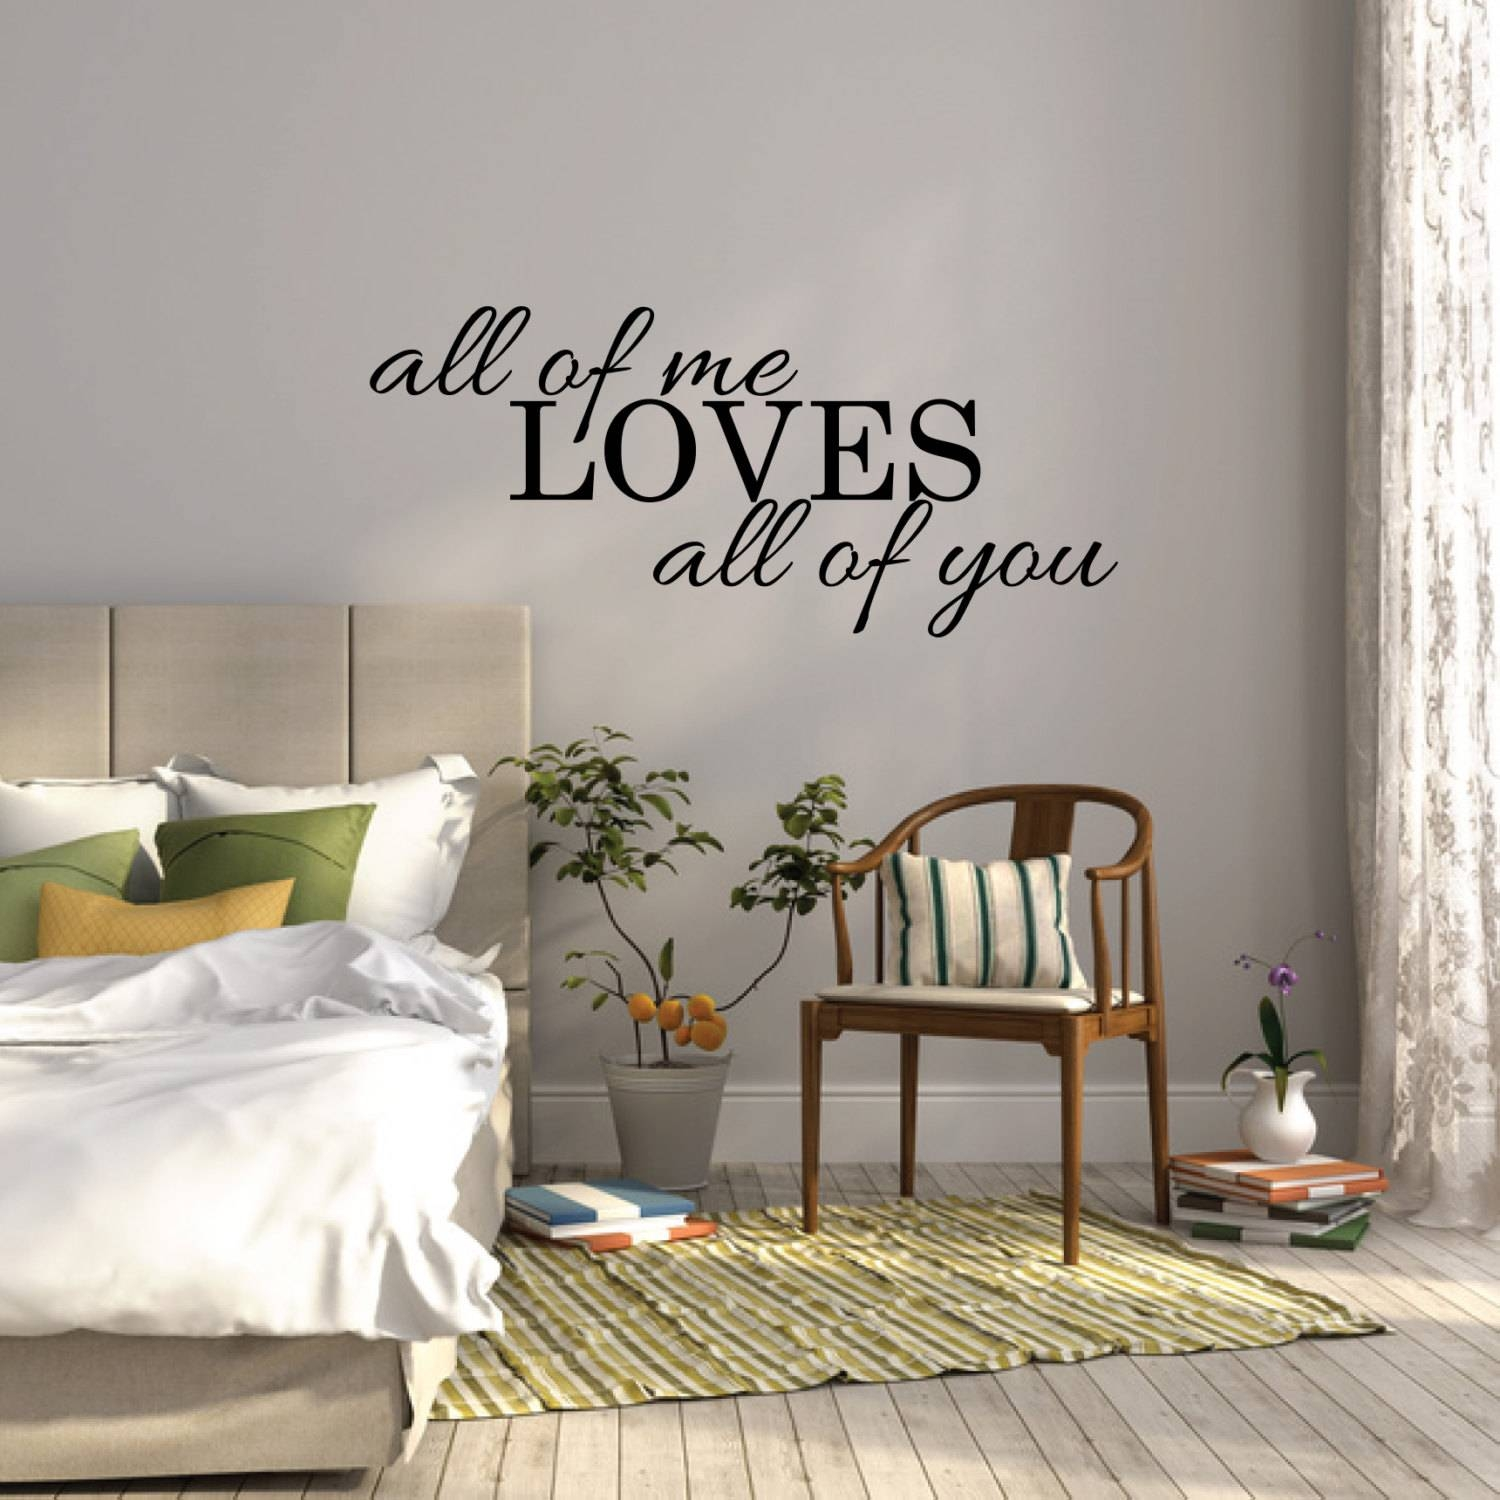 Designs : 3d Wall Vinyl 3d Vinyl Wall Murals' 3d Wall Vinyl Regarding Most Up To Date Love Coco 3d Vinyl Wall Art (View 9 of 20)